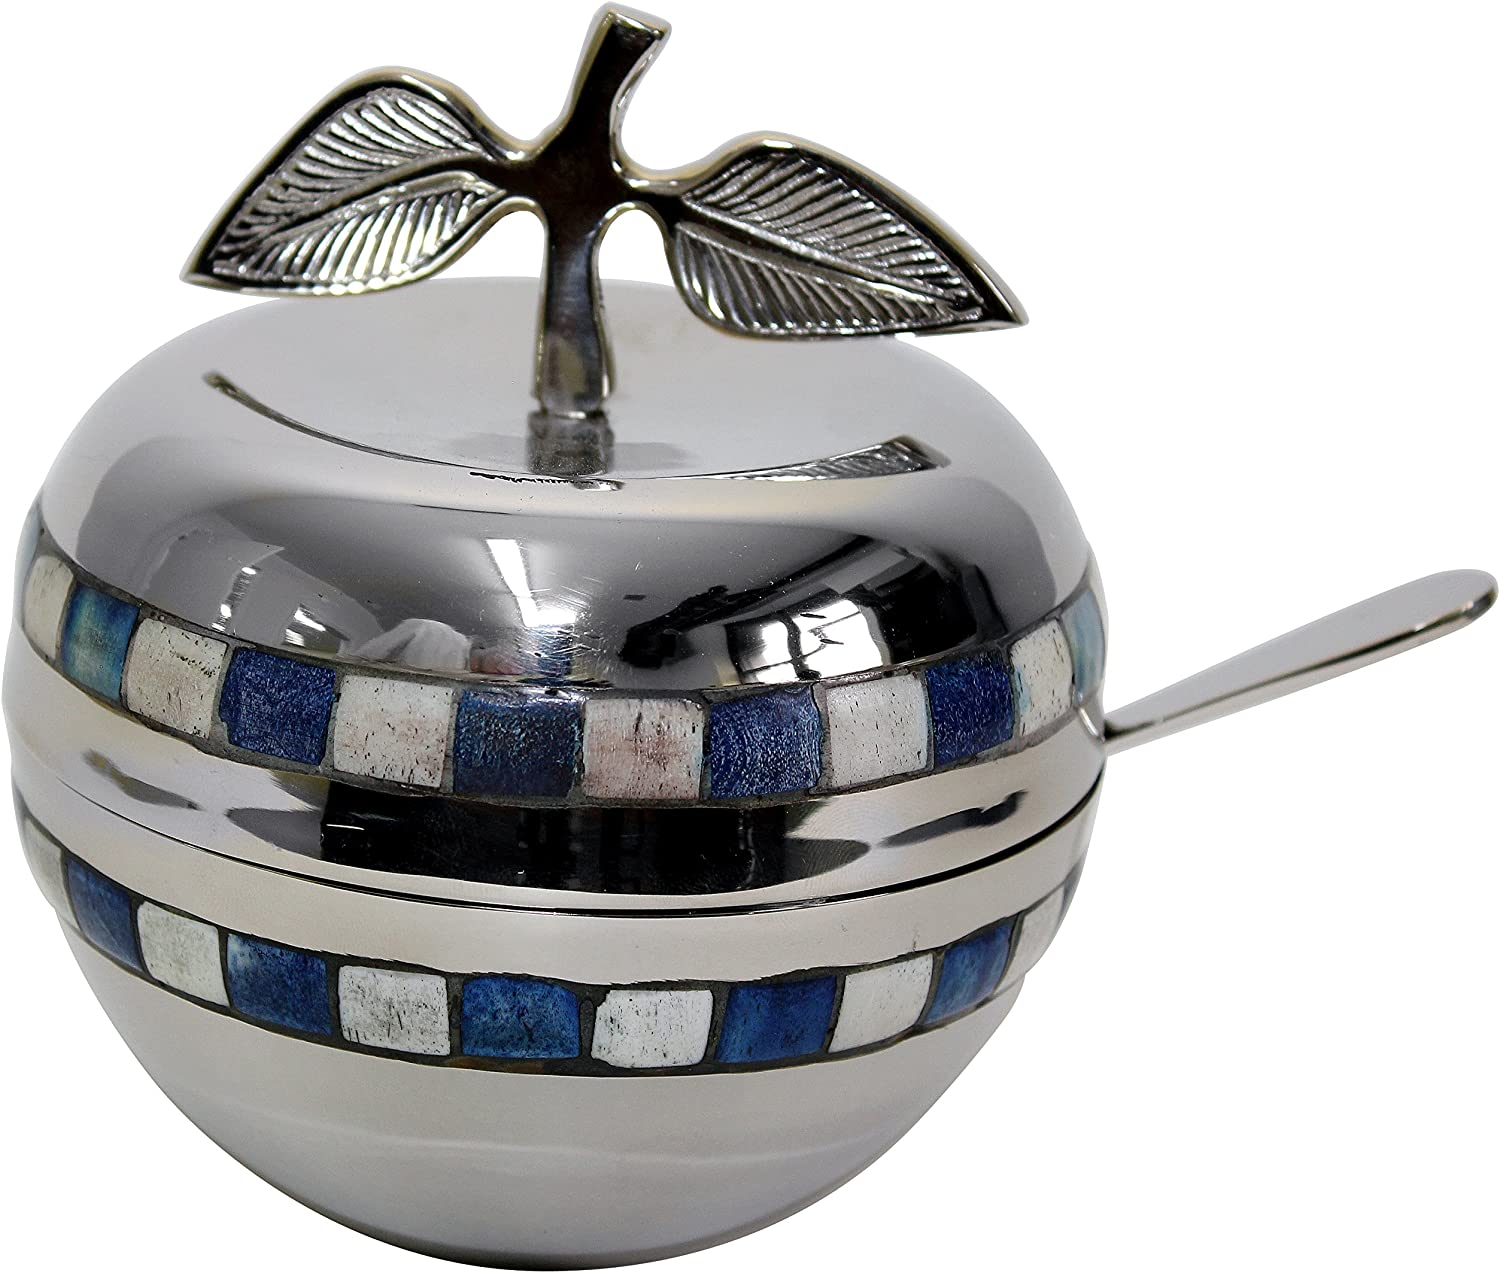 Majestic Giftware HD510 Honey Dish with bluee White Stone and Glass Insert, 5-Inch, Nickel